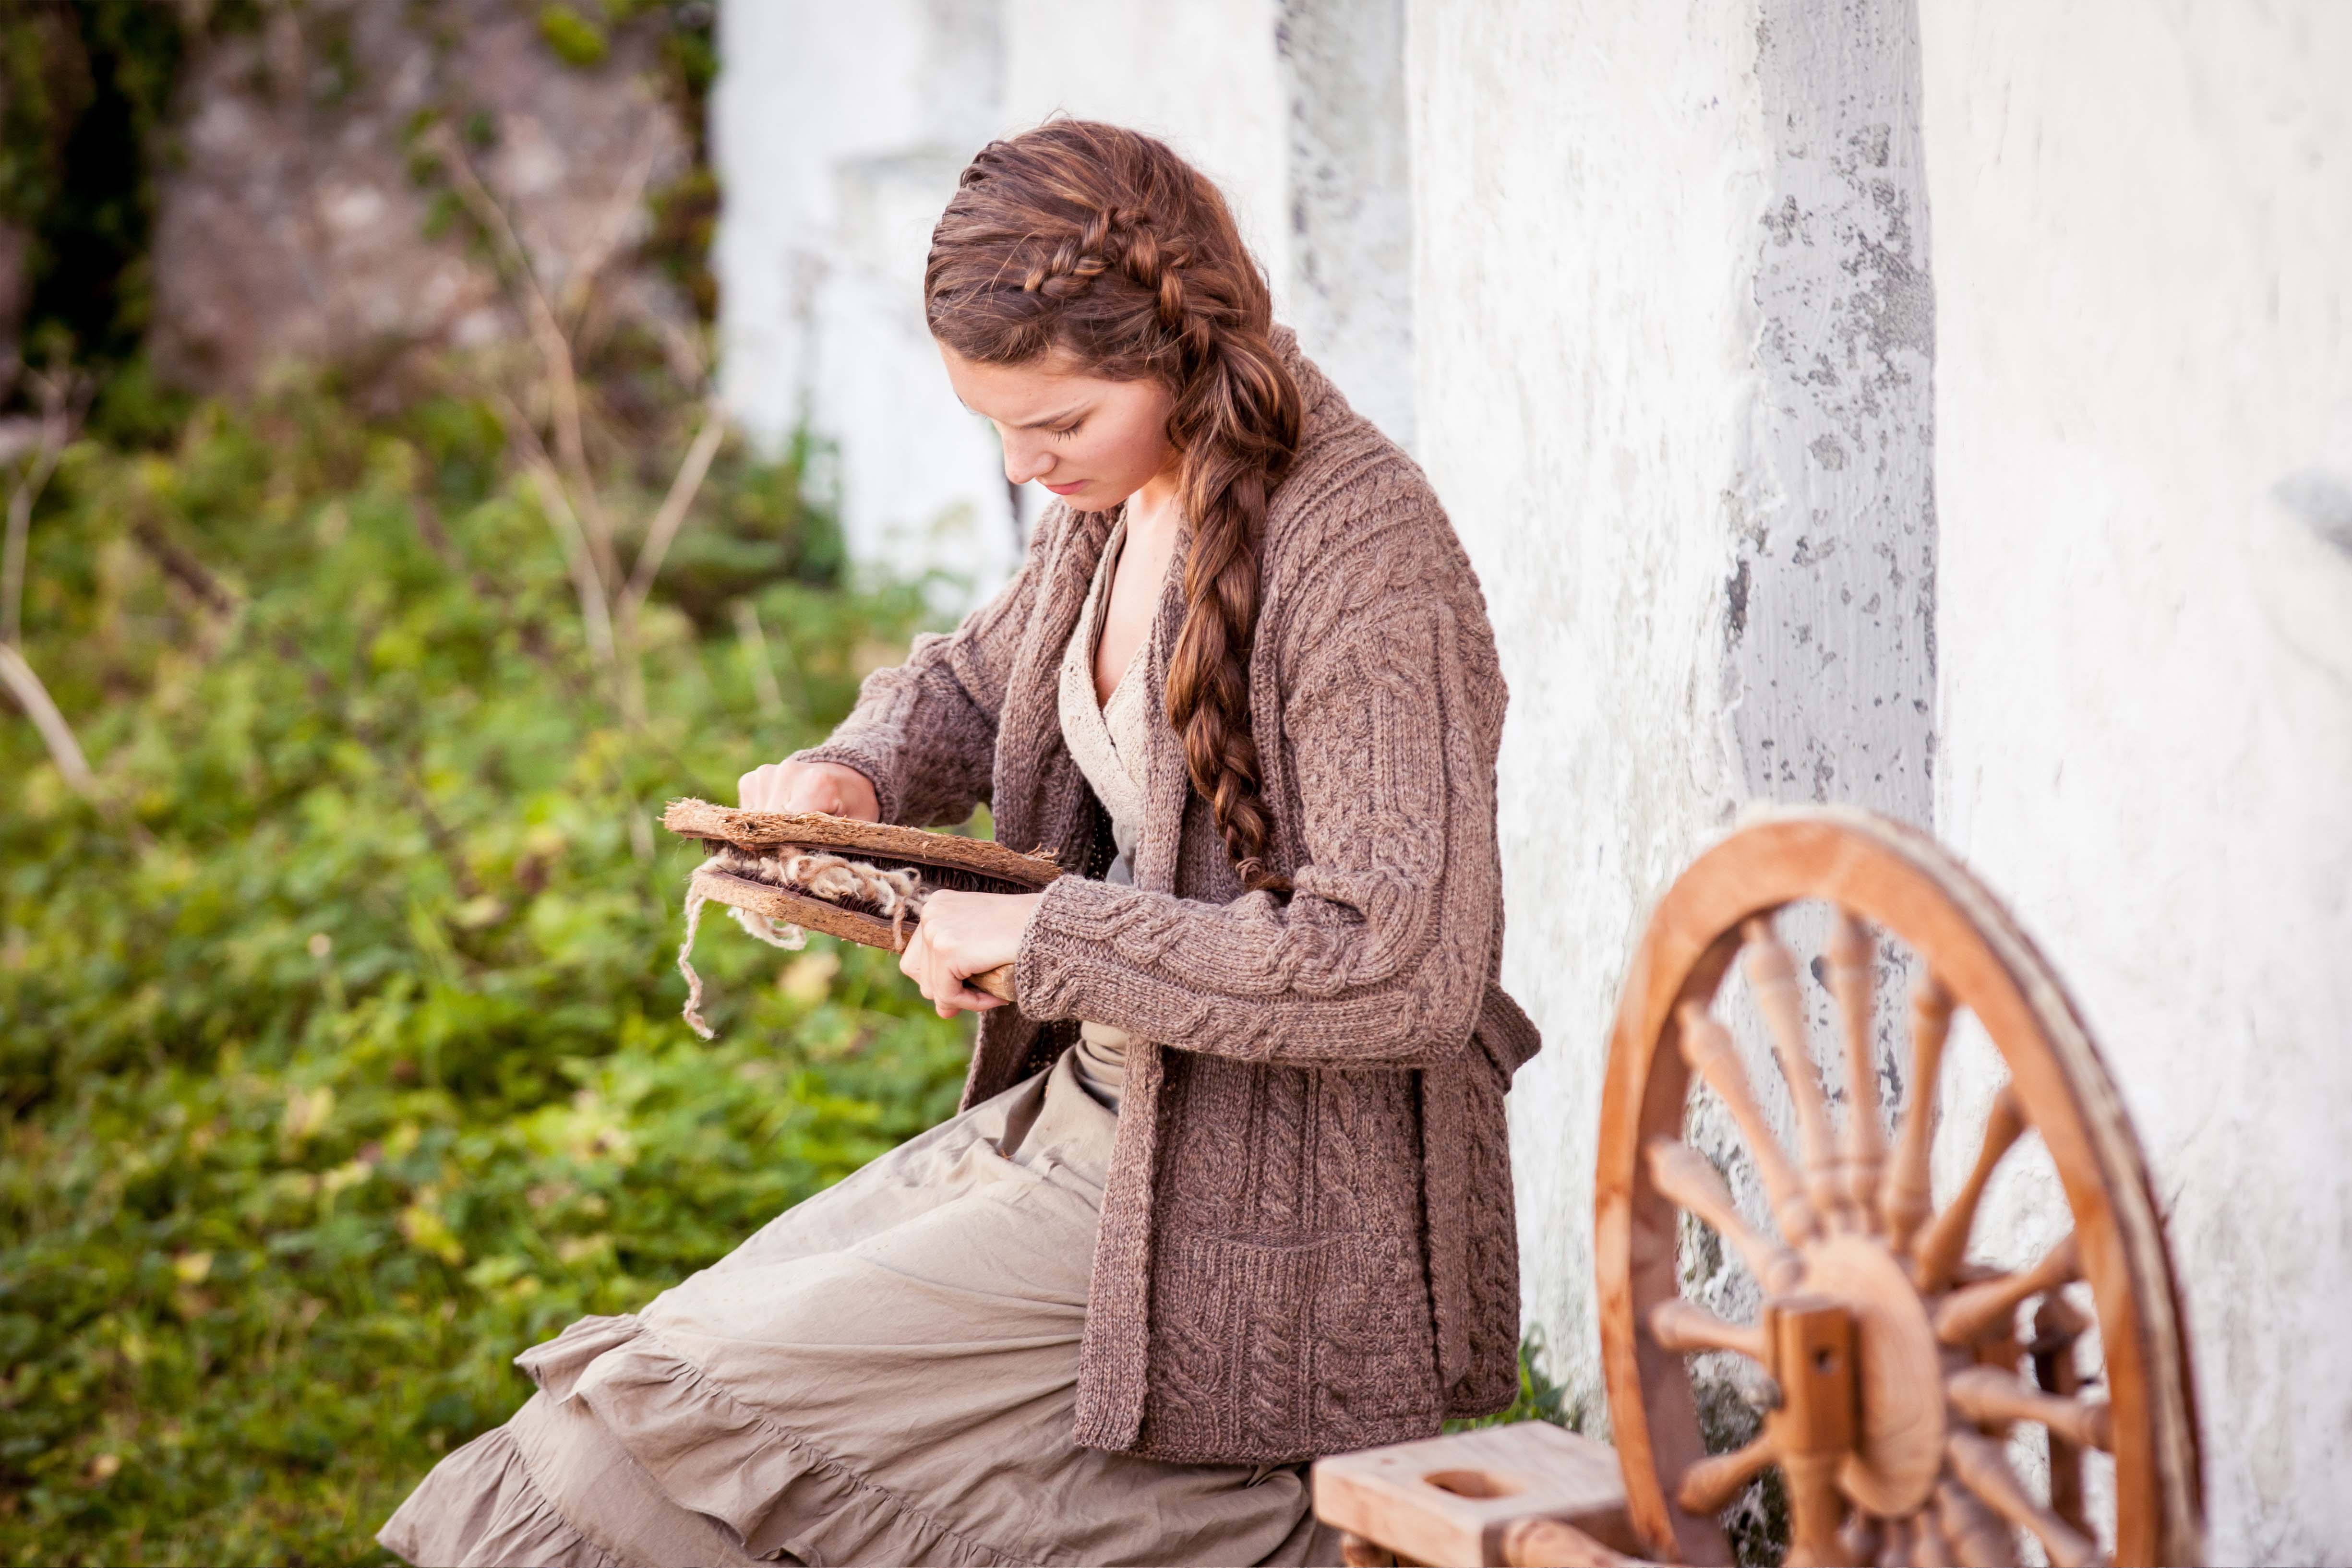 Aran Knitwear, Ireland - styled through the ages